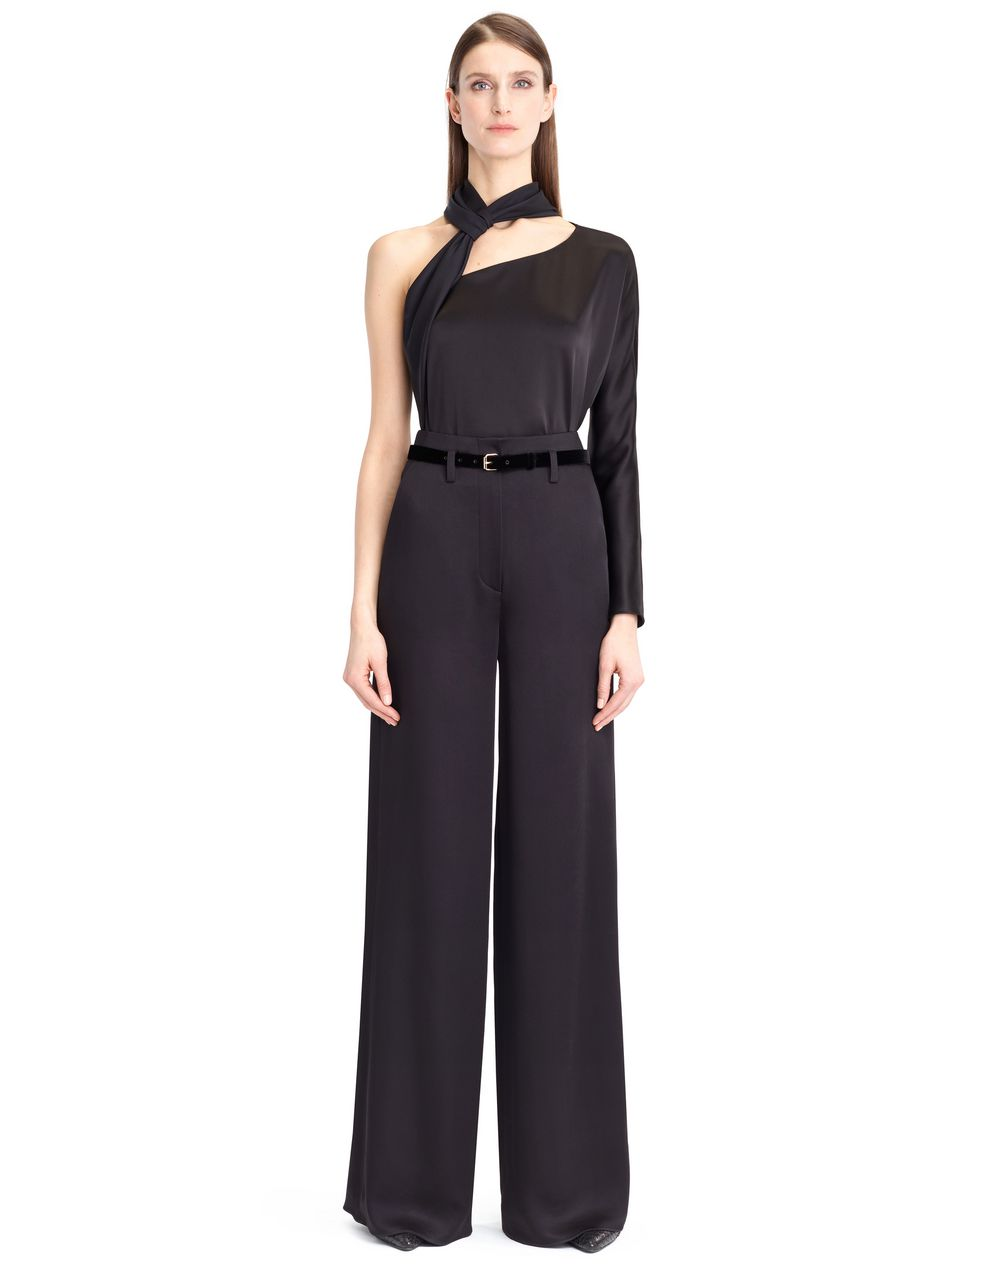 SATIN SABLE PANTS - Lanvin